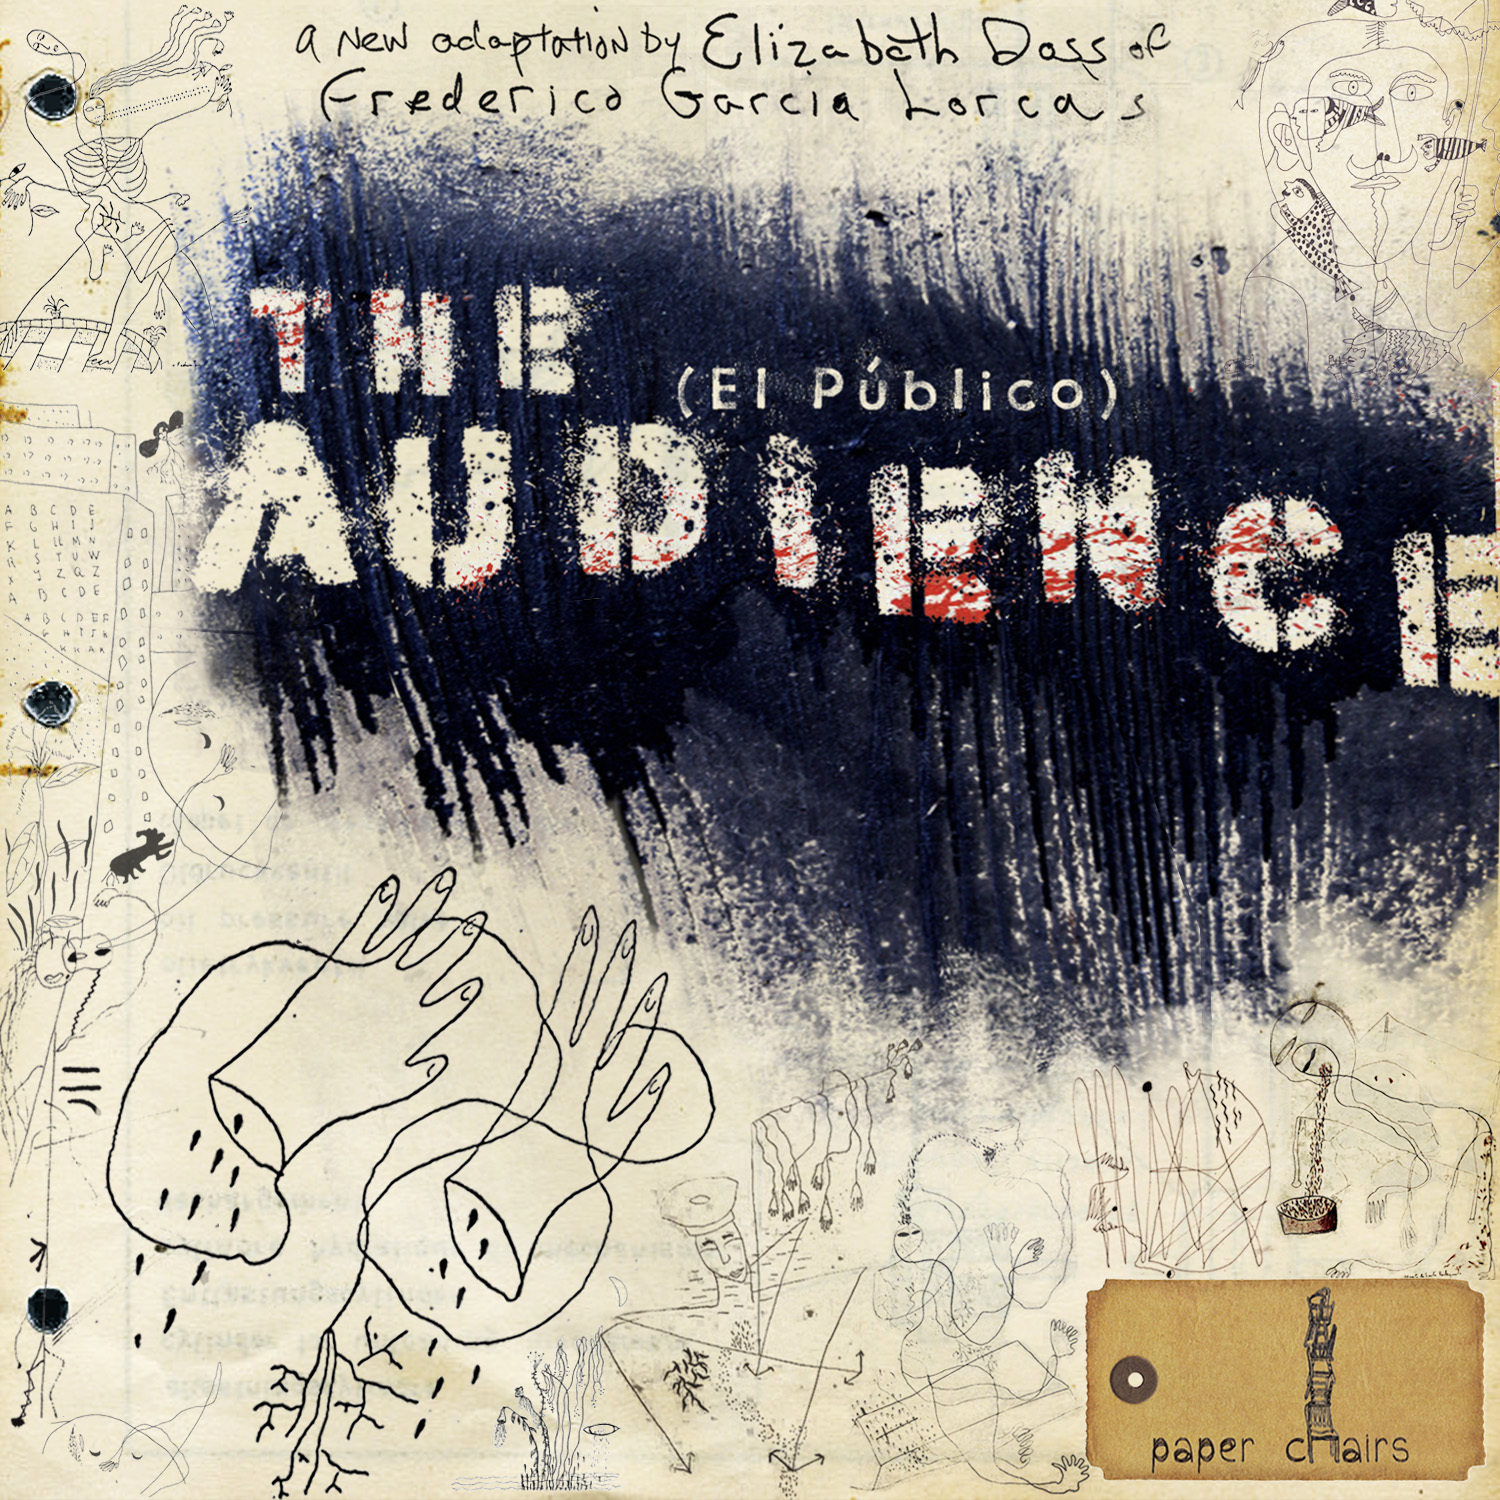 BWW Review: THE AUDIENCE (EL PUBLICO) at Austin Playhouse